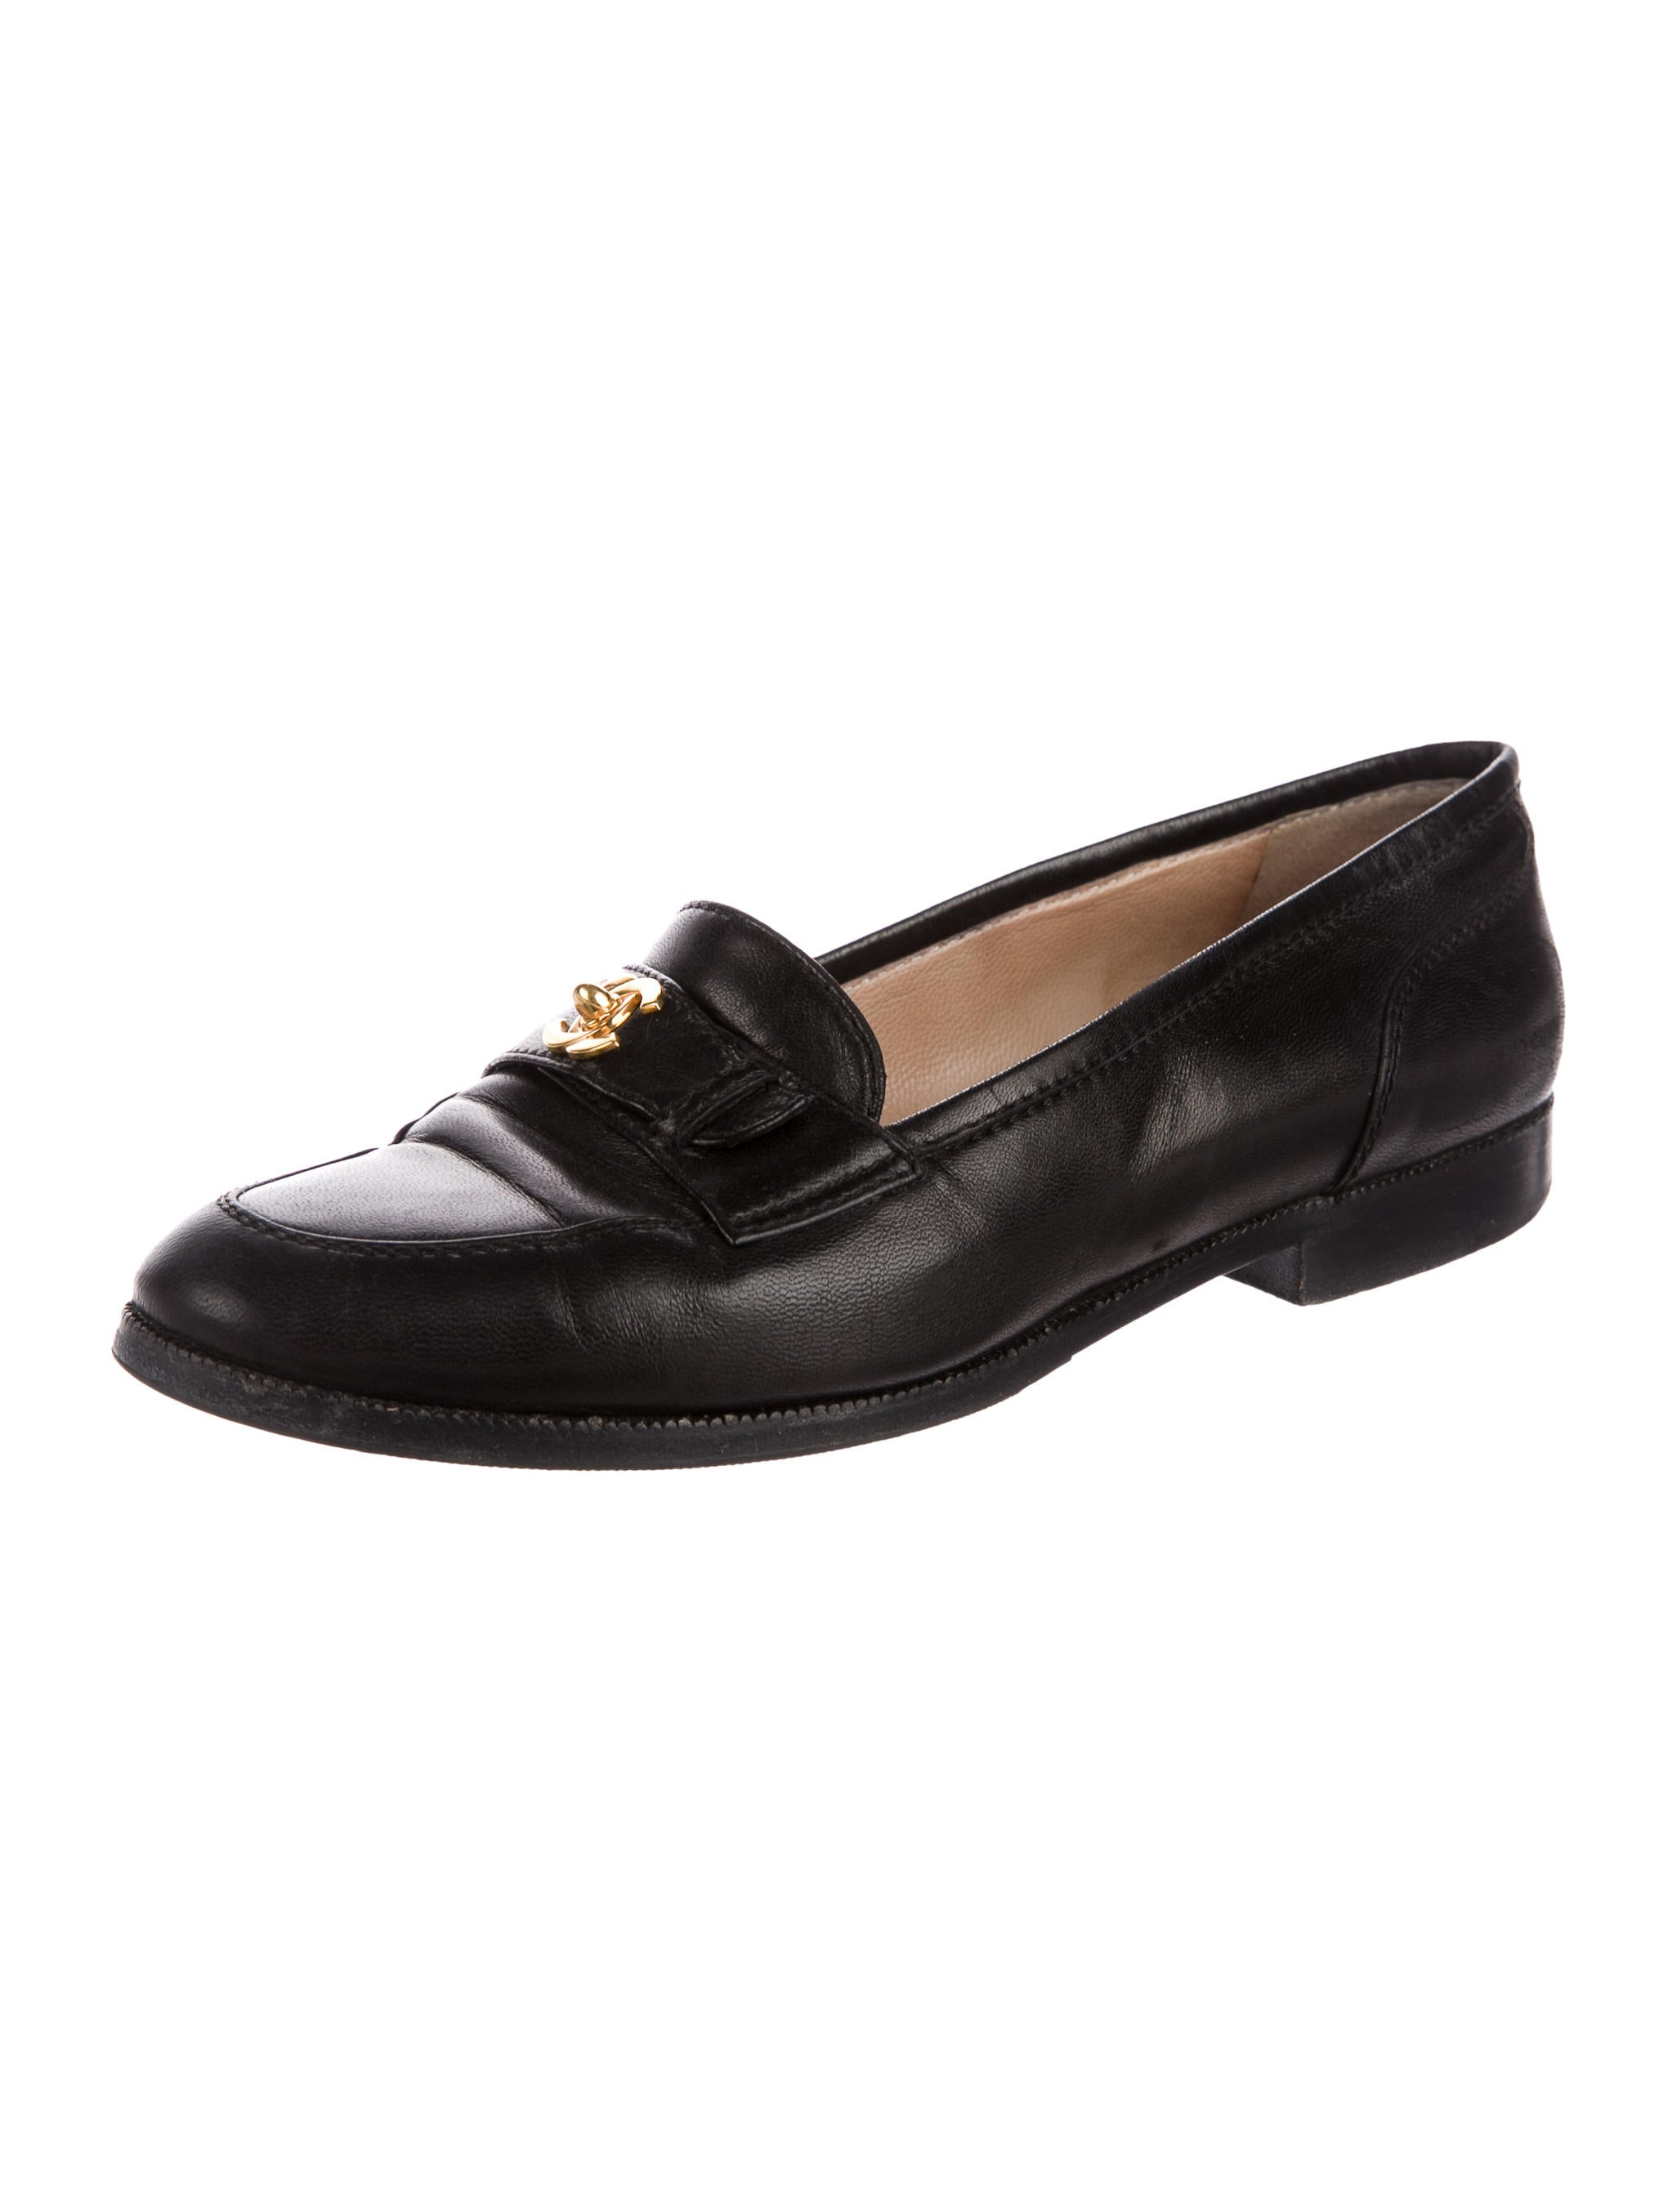 Chanel Leather CC Loafers - Shoes - CHA219904 | The RealReal